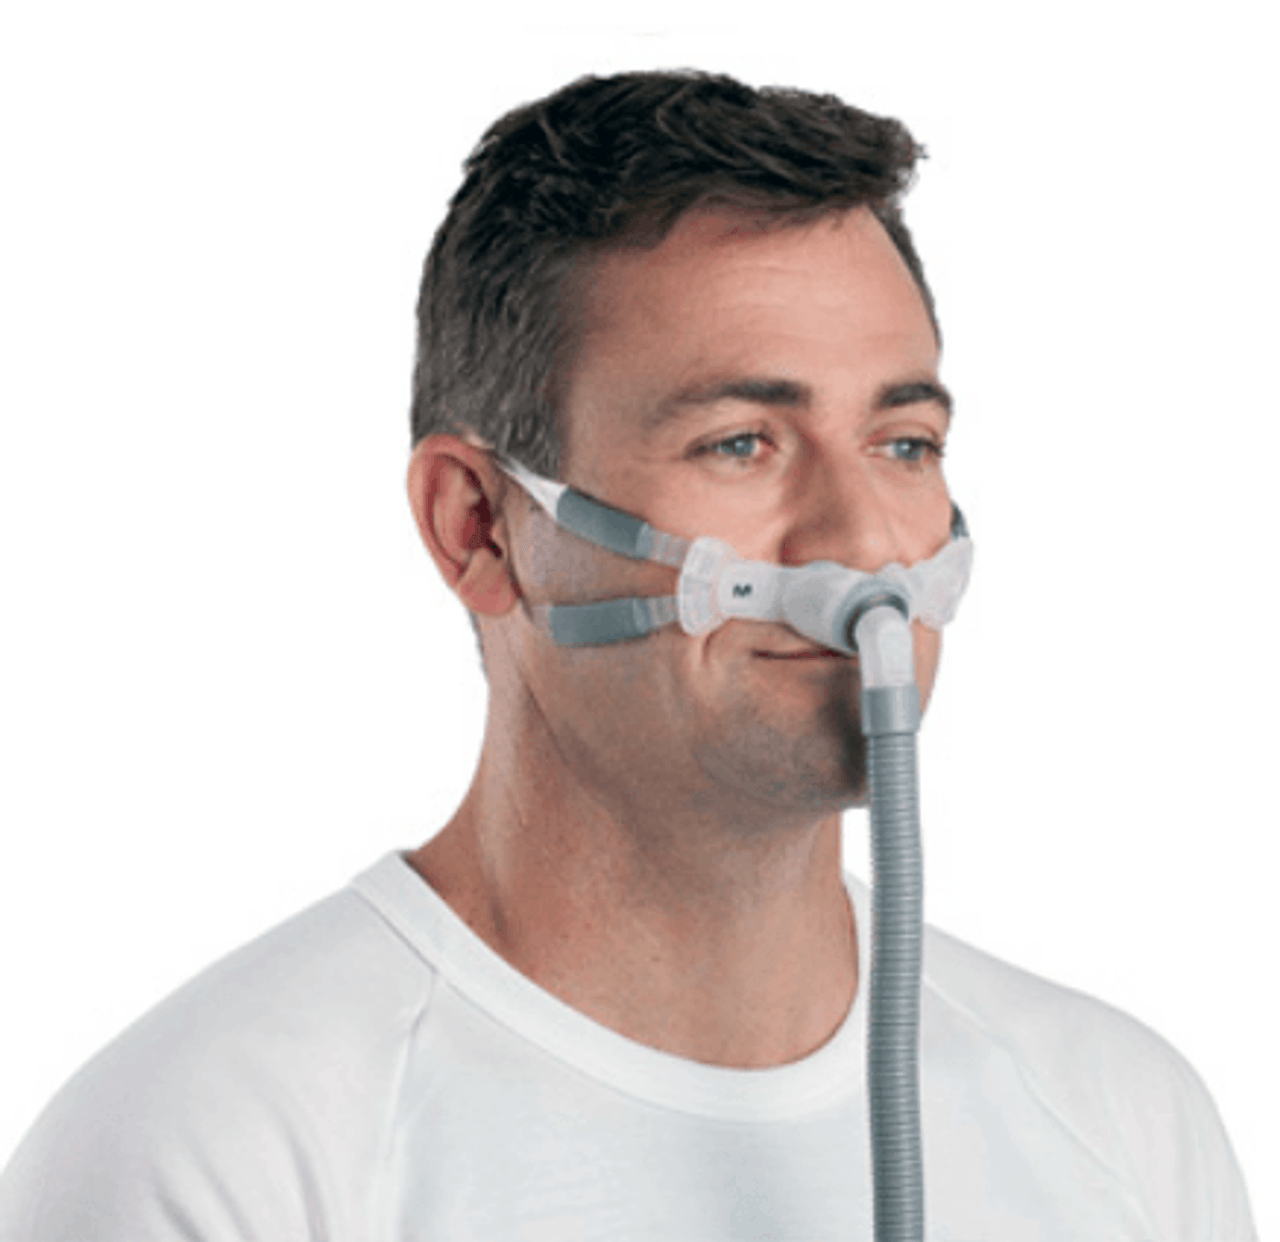 resmed swift fx bella gray nasal pillow system with headgear